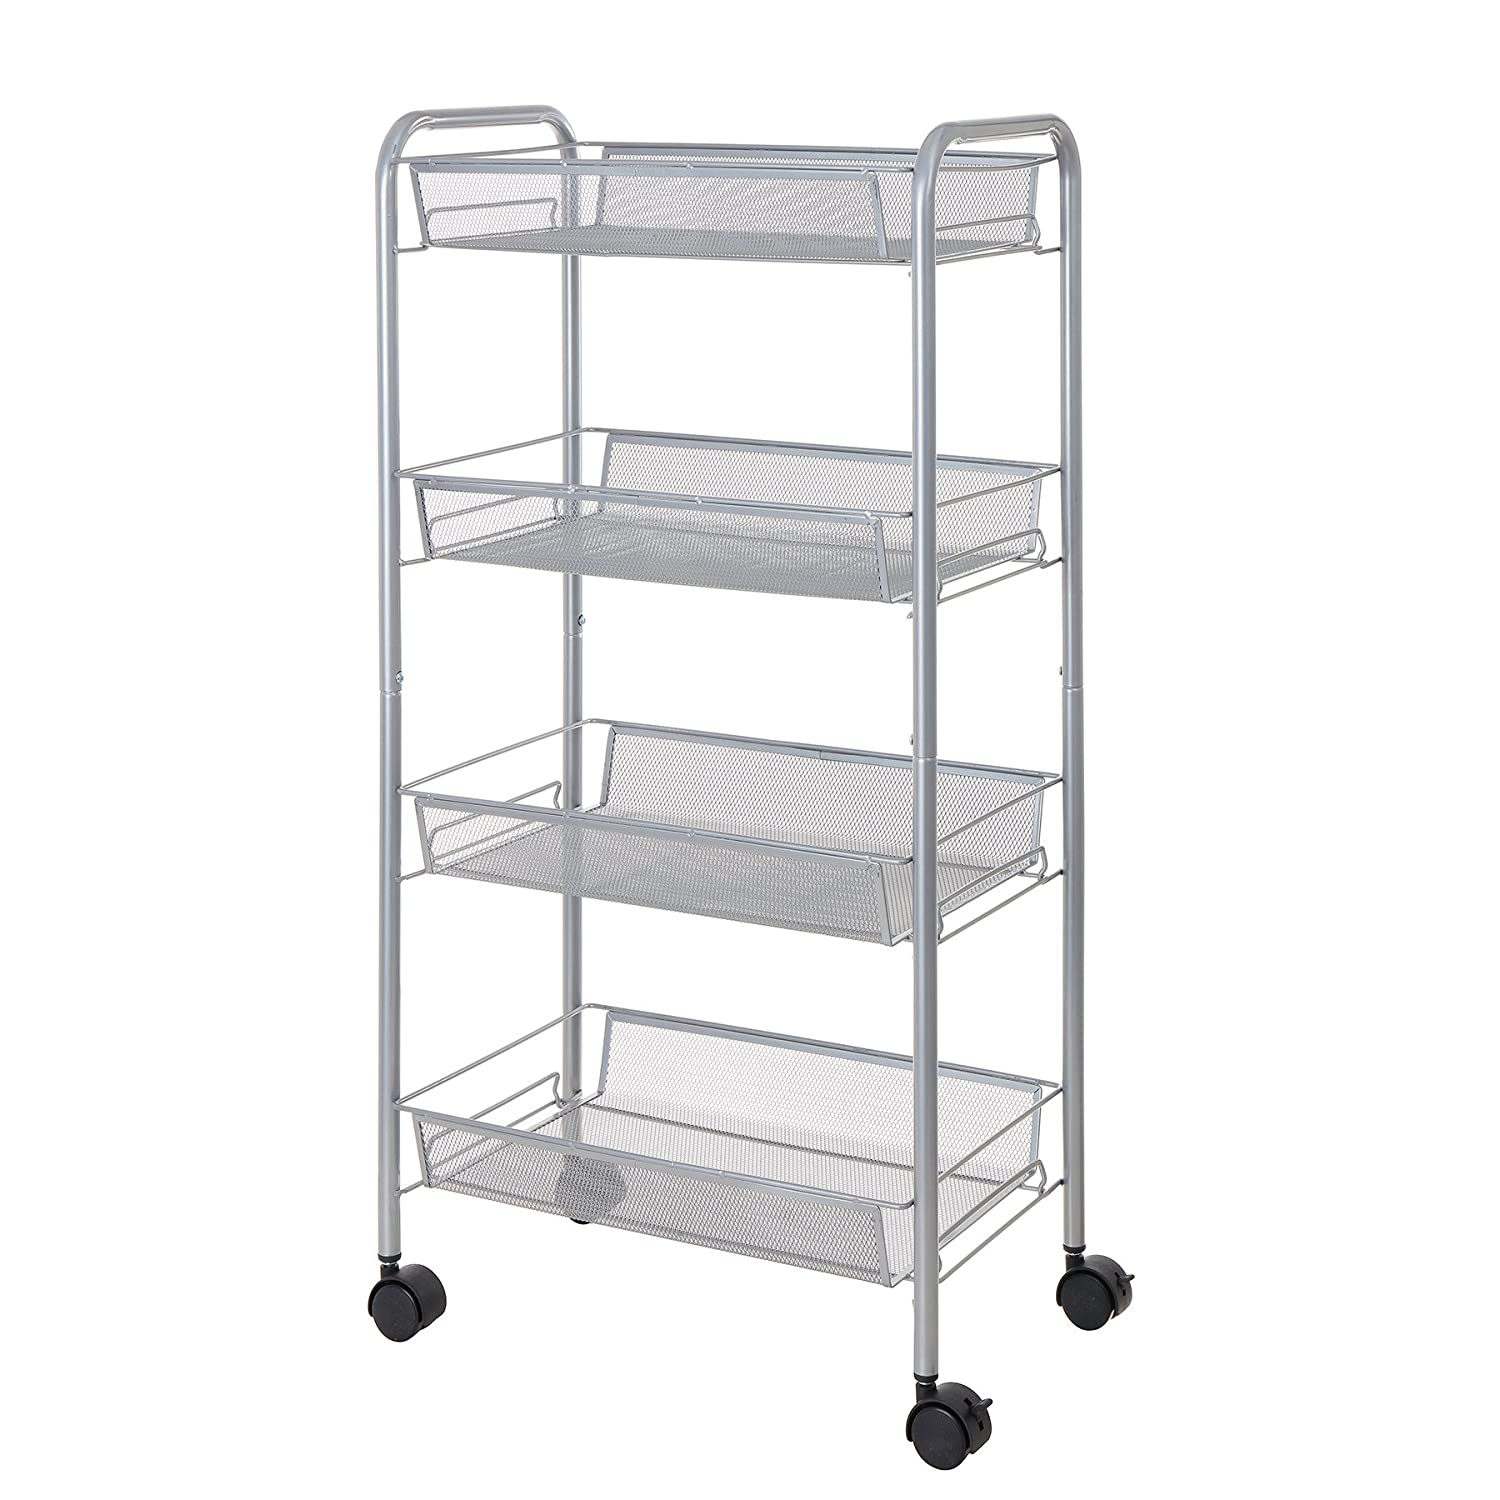 Finnhomy Mesh Rolling Cart 4-Tier Utility Storage Cart Office Suppliers Laundry Cart Space Saver for Home Accessories Kitchen Silver